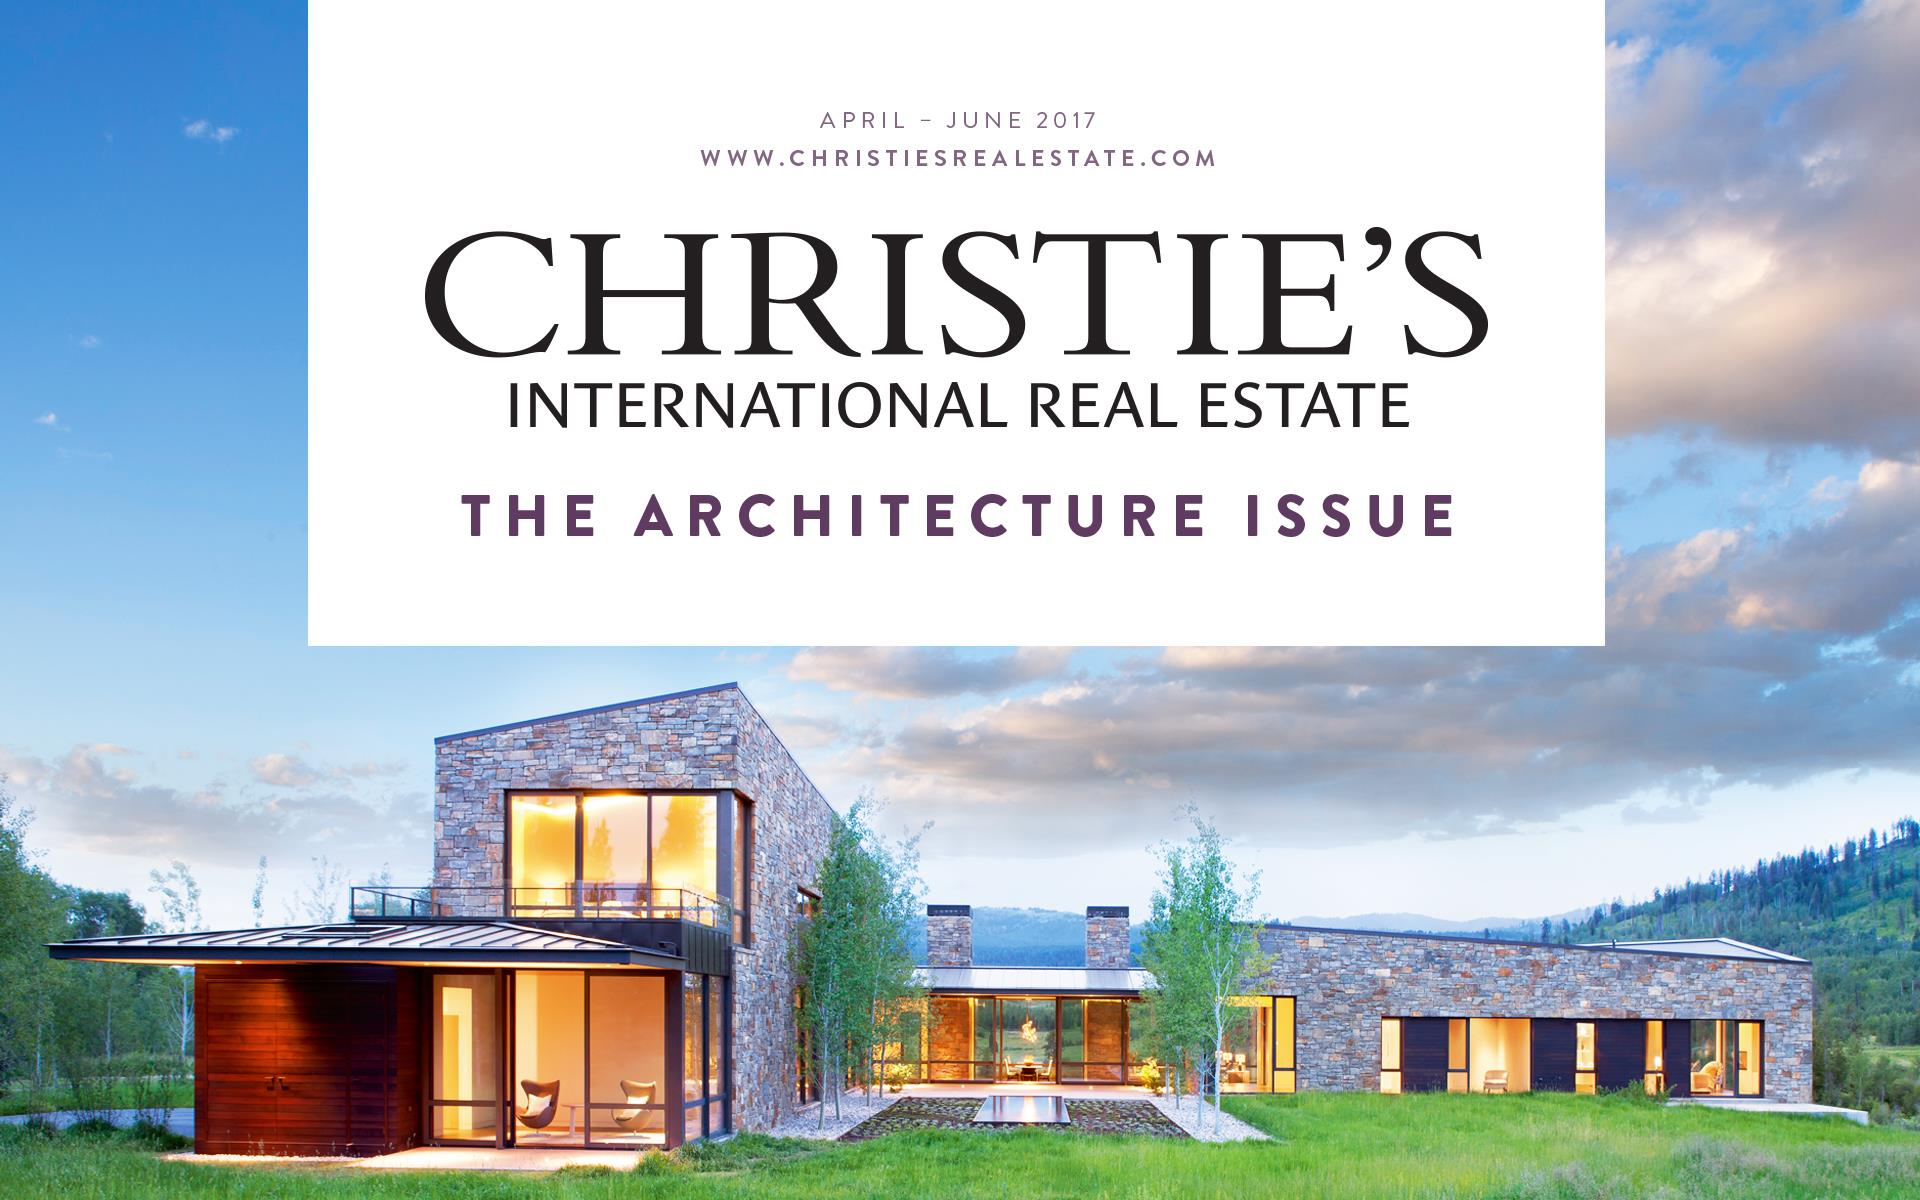 International property magazine - Christie S Has Just Released Their First International Real Estate Magazine For 2017 In Addition To A Collection Of Luxury Properties Around The World It